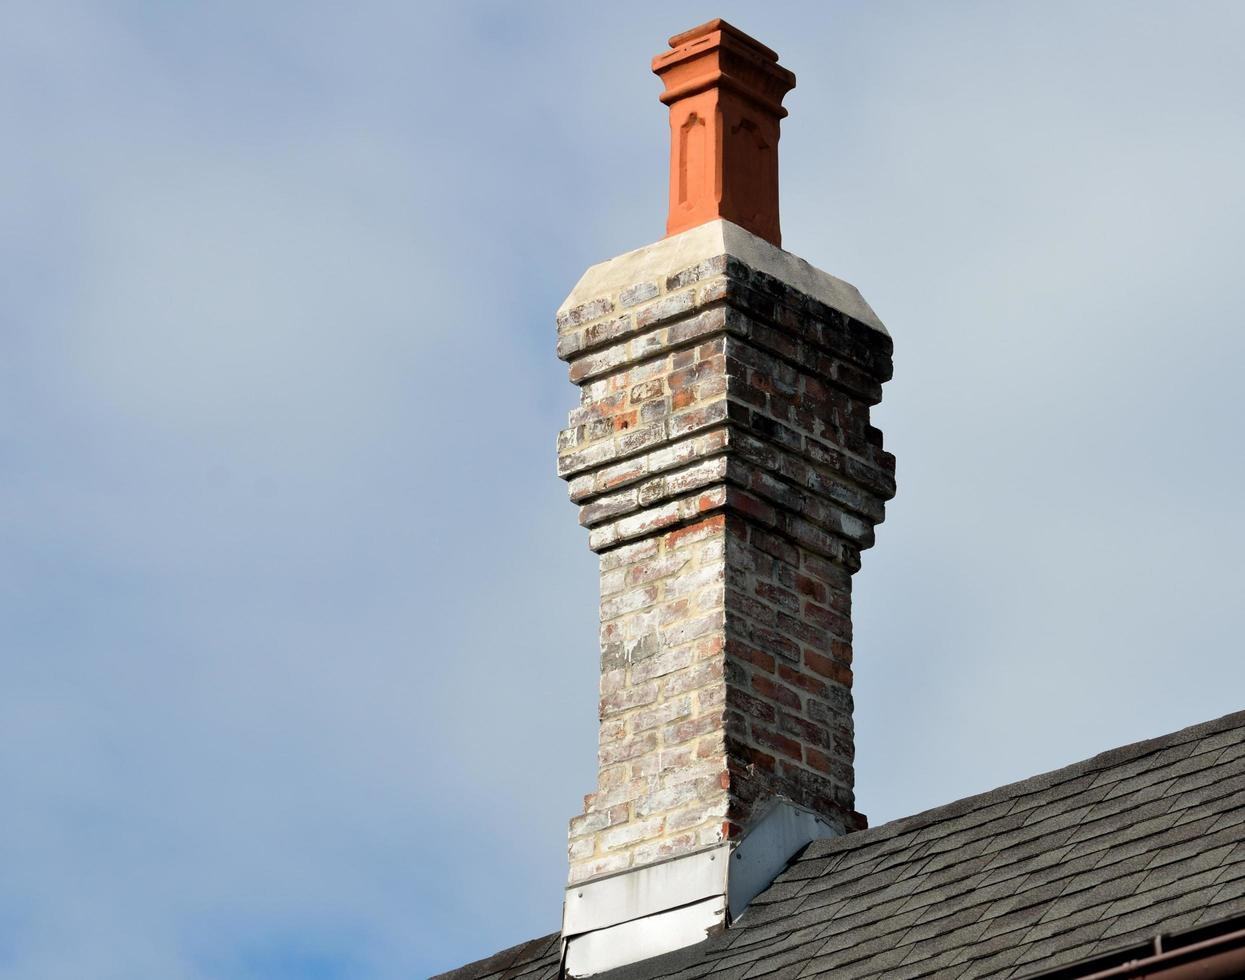 Vintage chimney on a roof photo